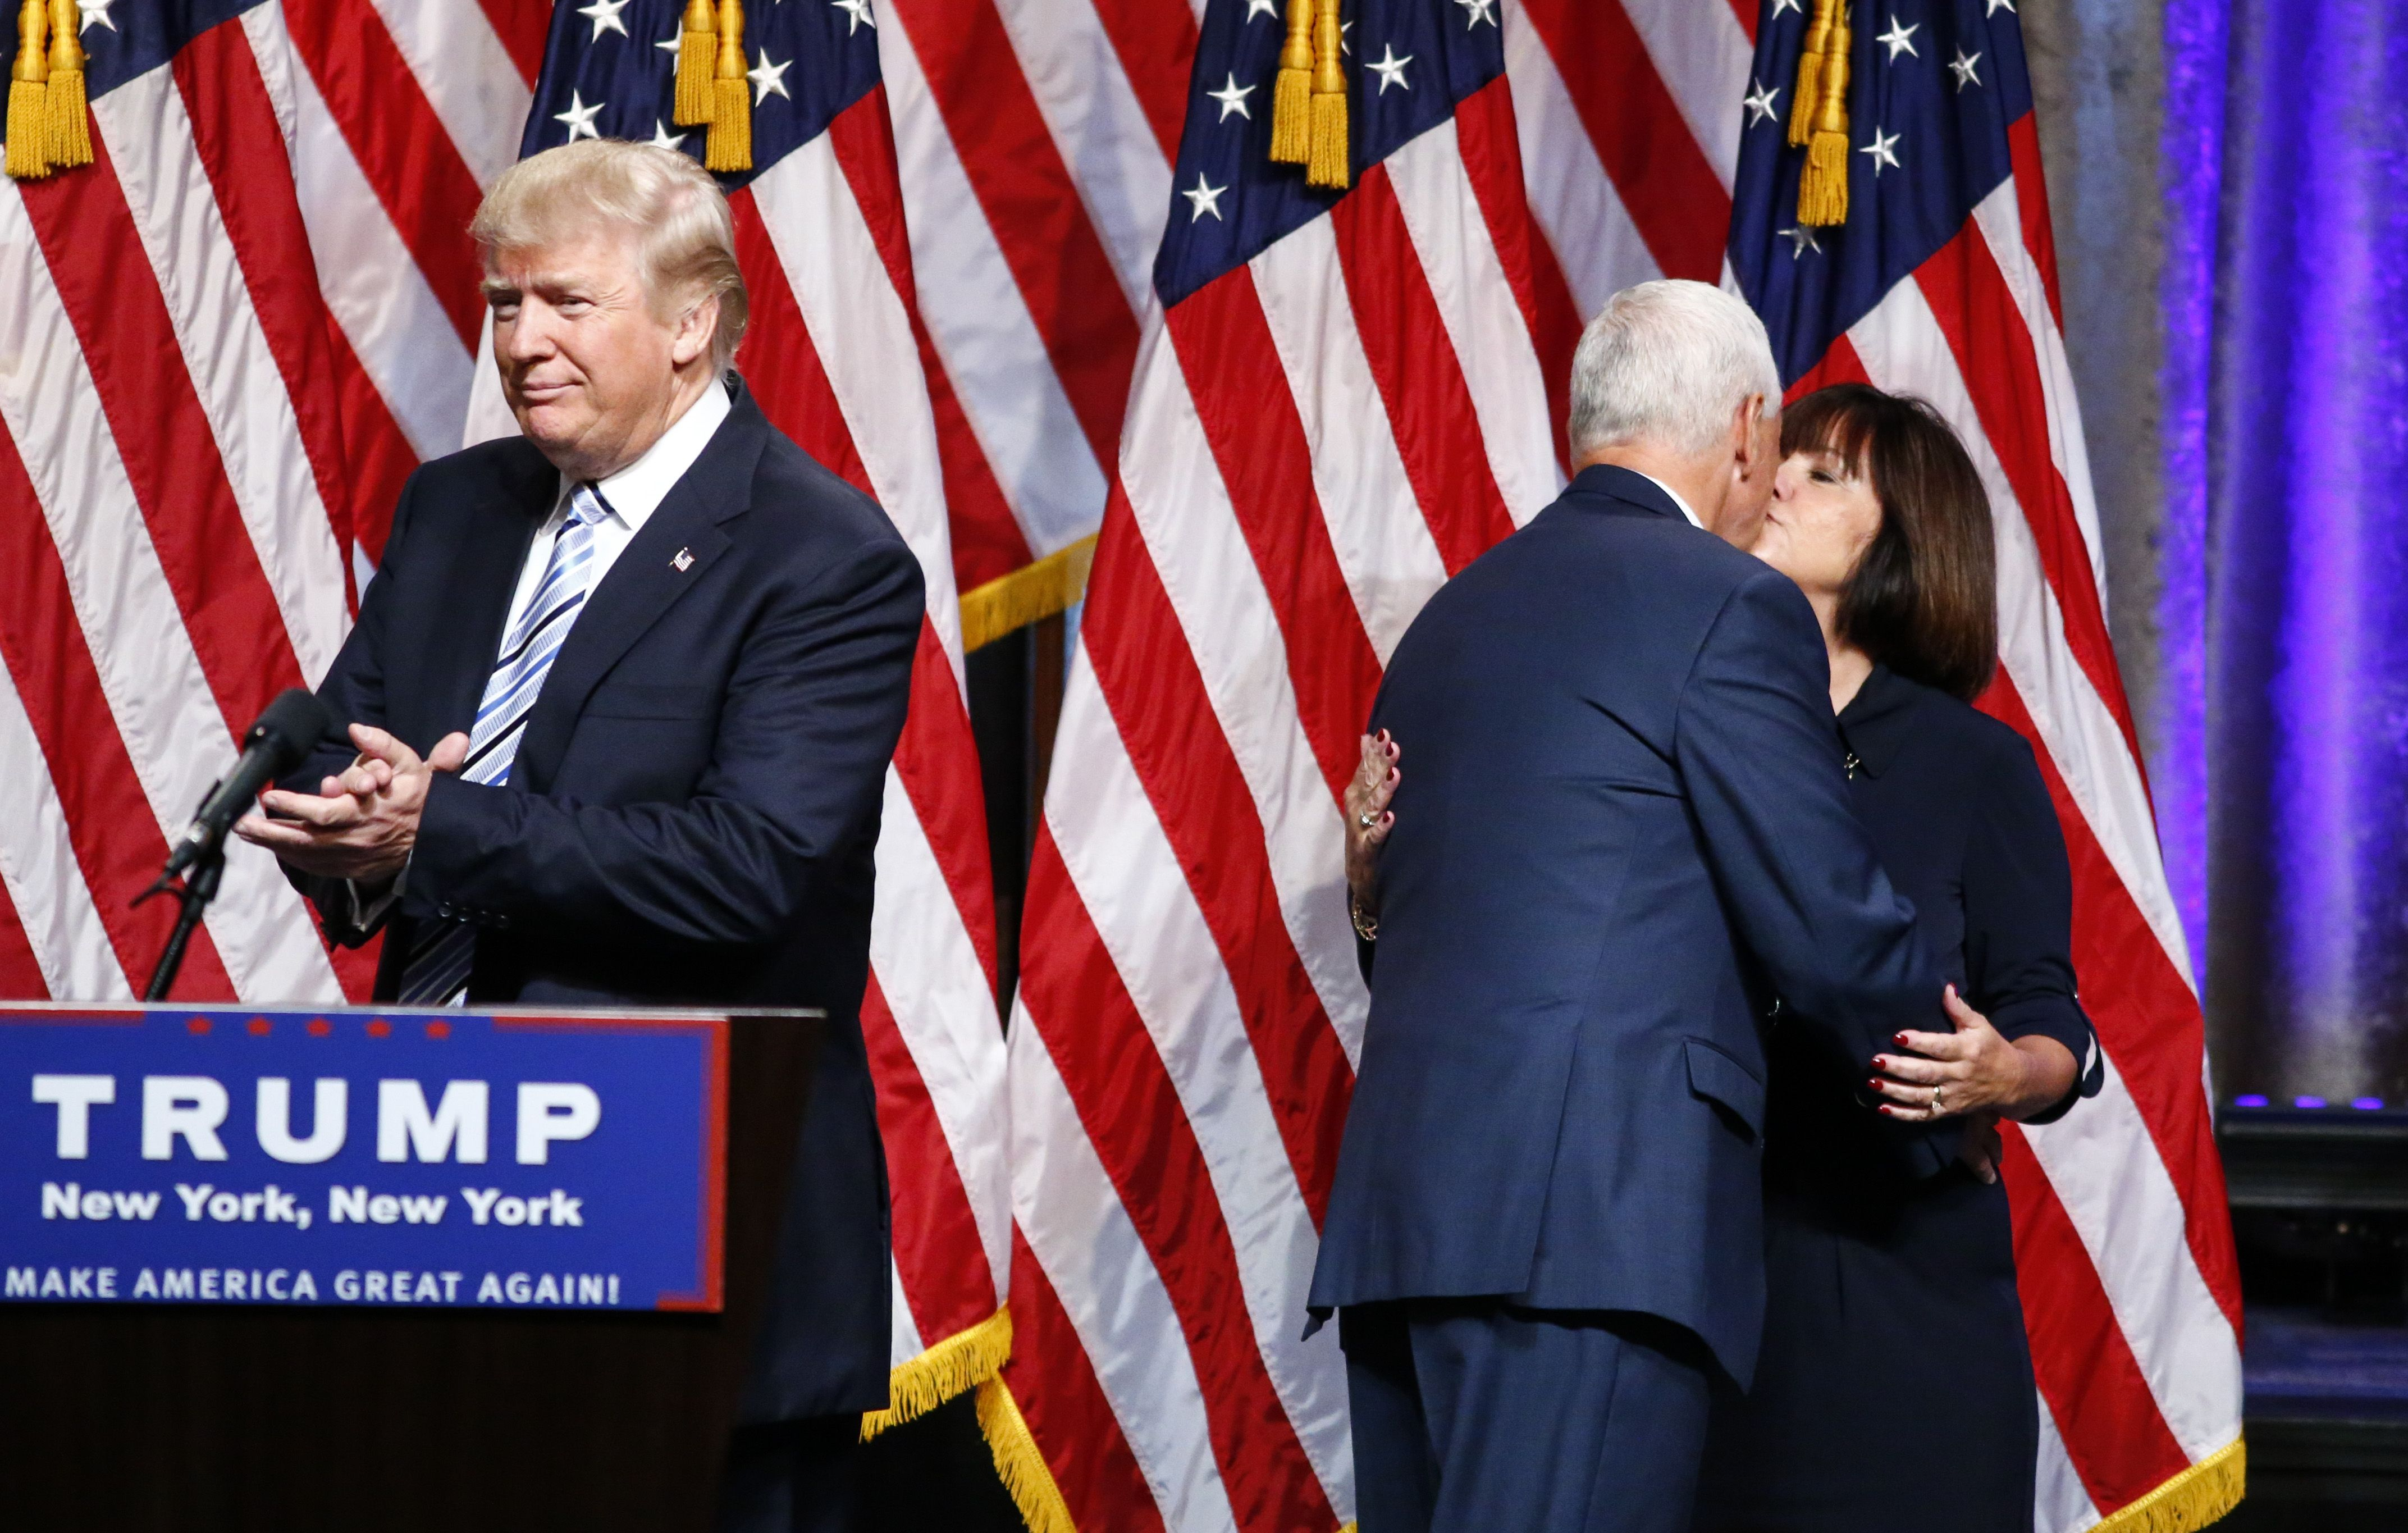 Mike Pence turned to Karen when deciding whether or not to join the Trump ticket.